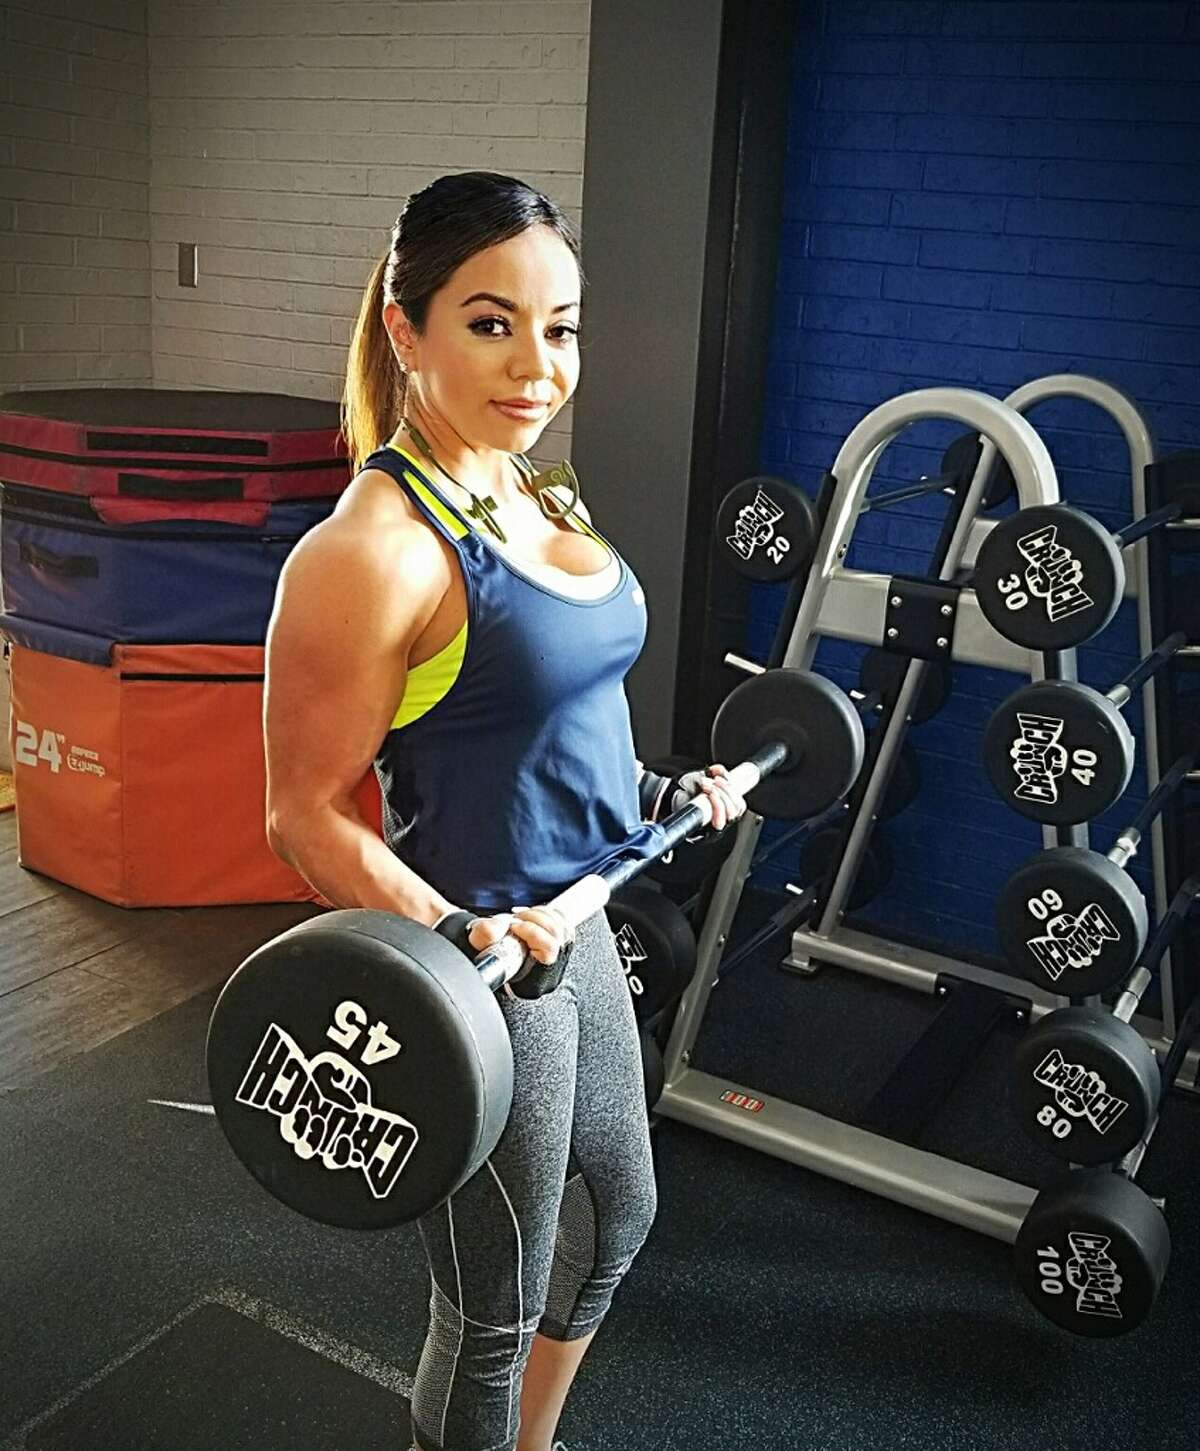 Cindy Long O'bryant at Crunch Fitness Gym